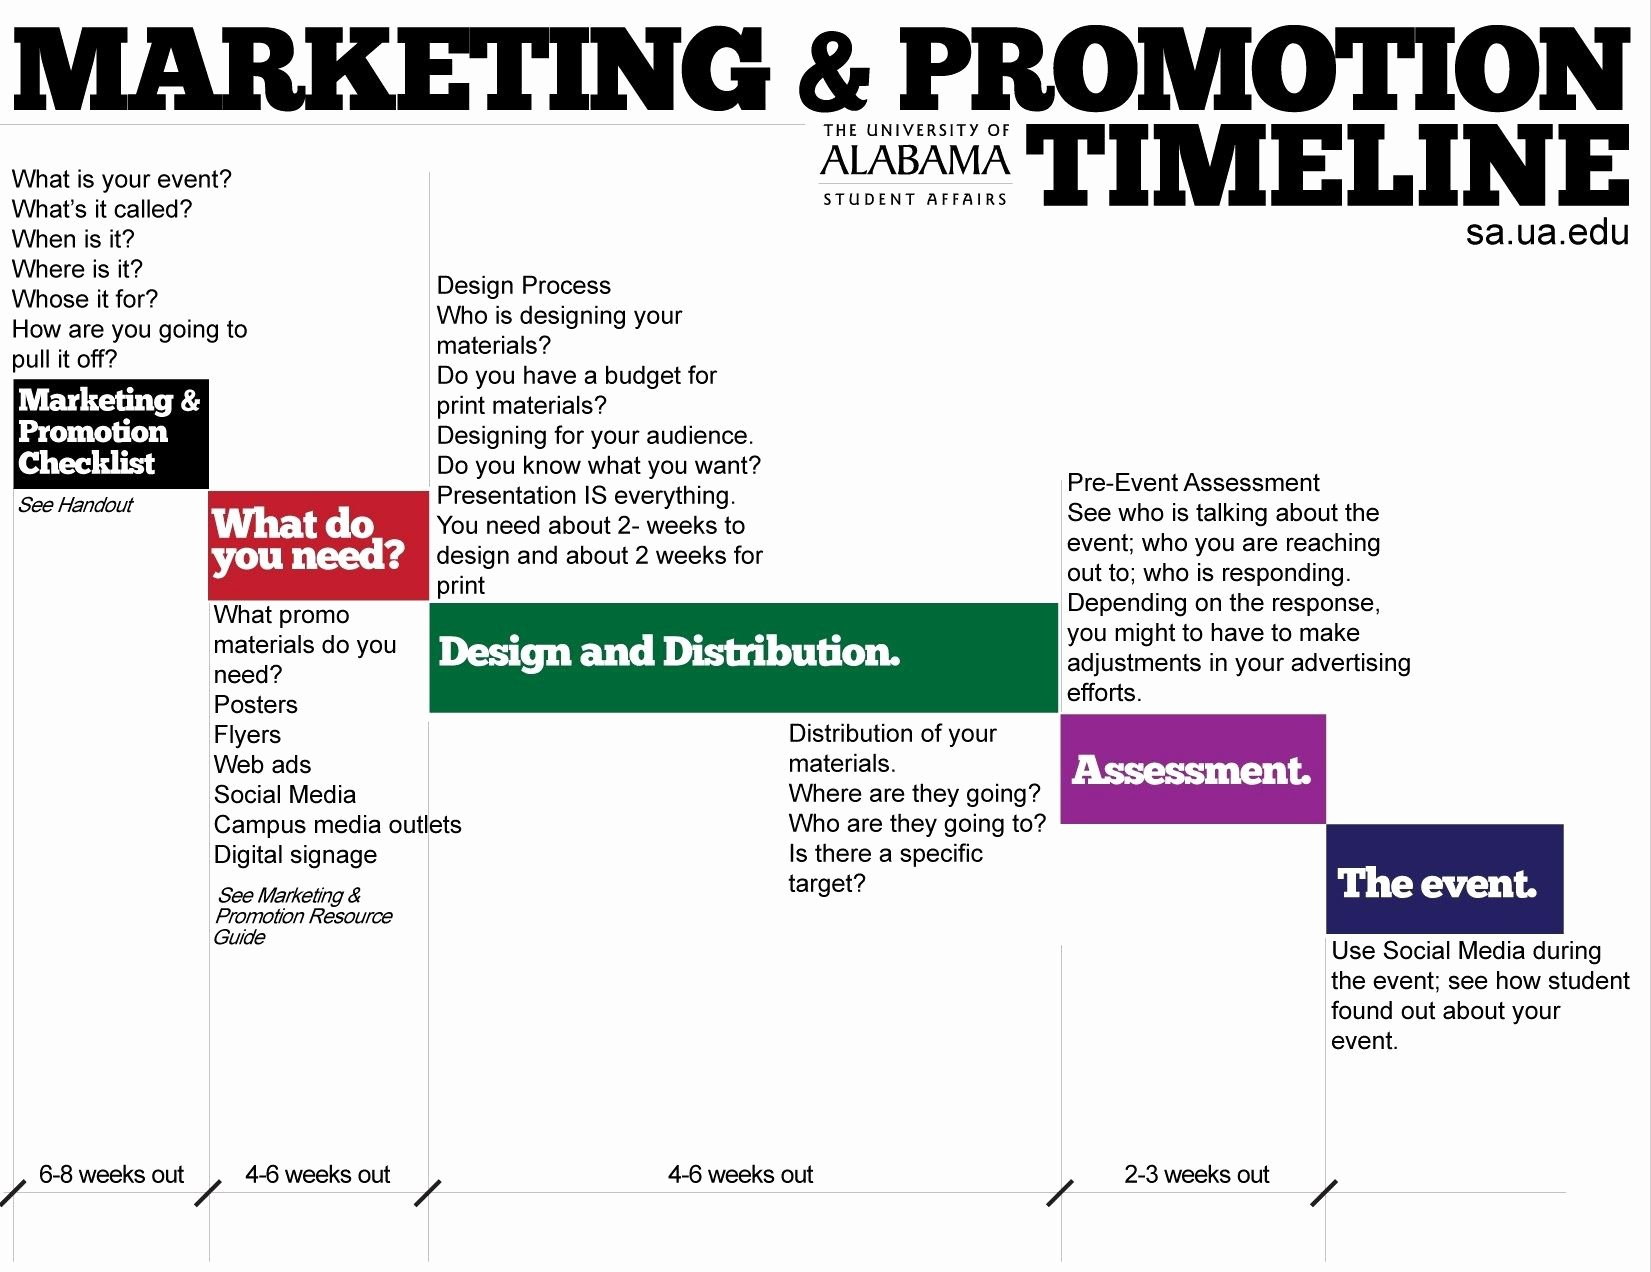 Event Marketing Plan Template Best Of Marketing Timeline Info 283 Personal Board